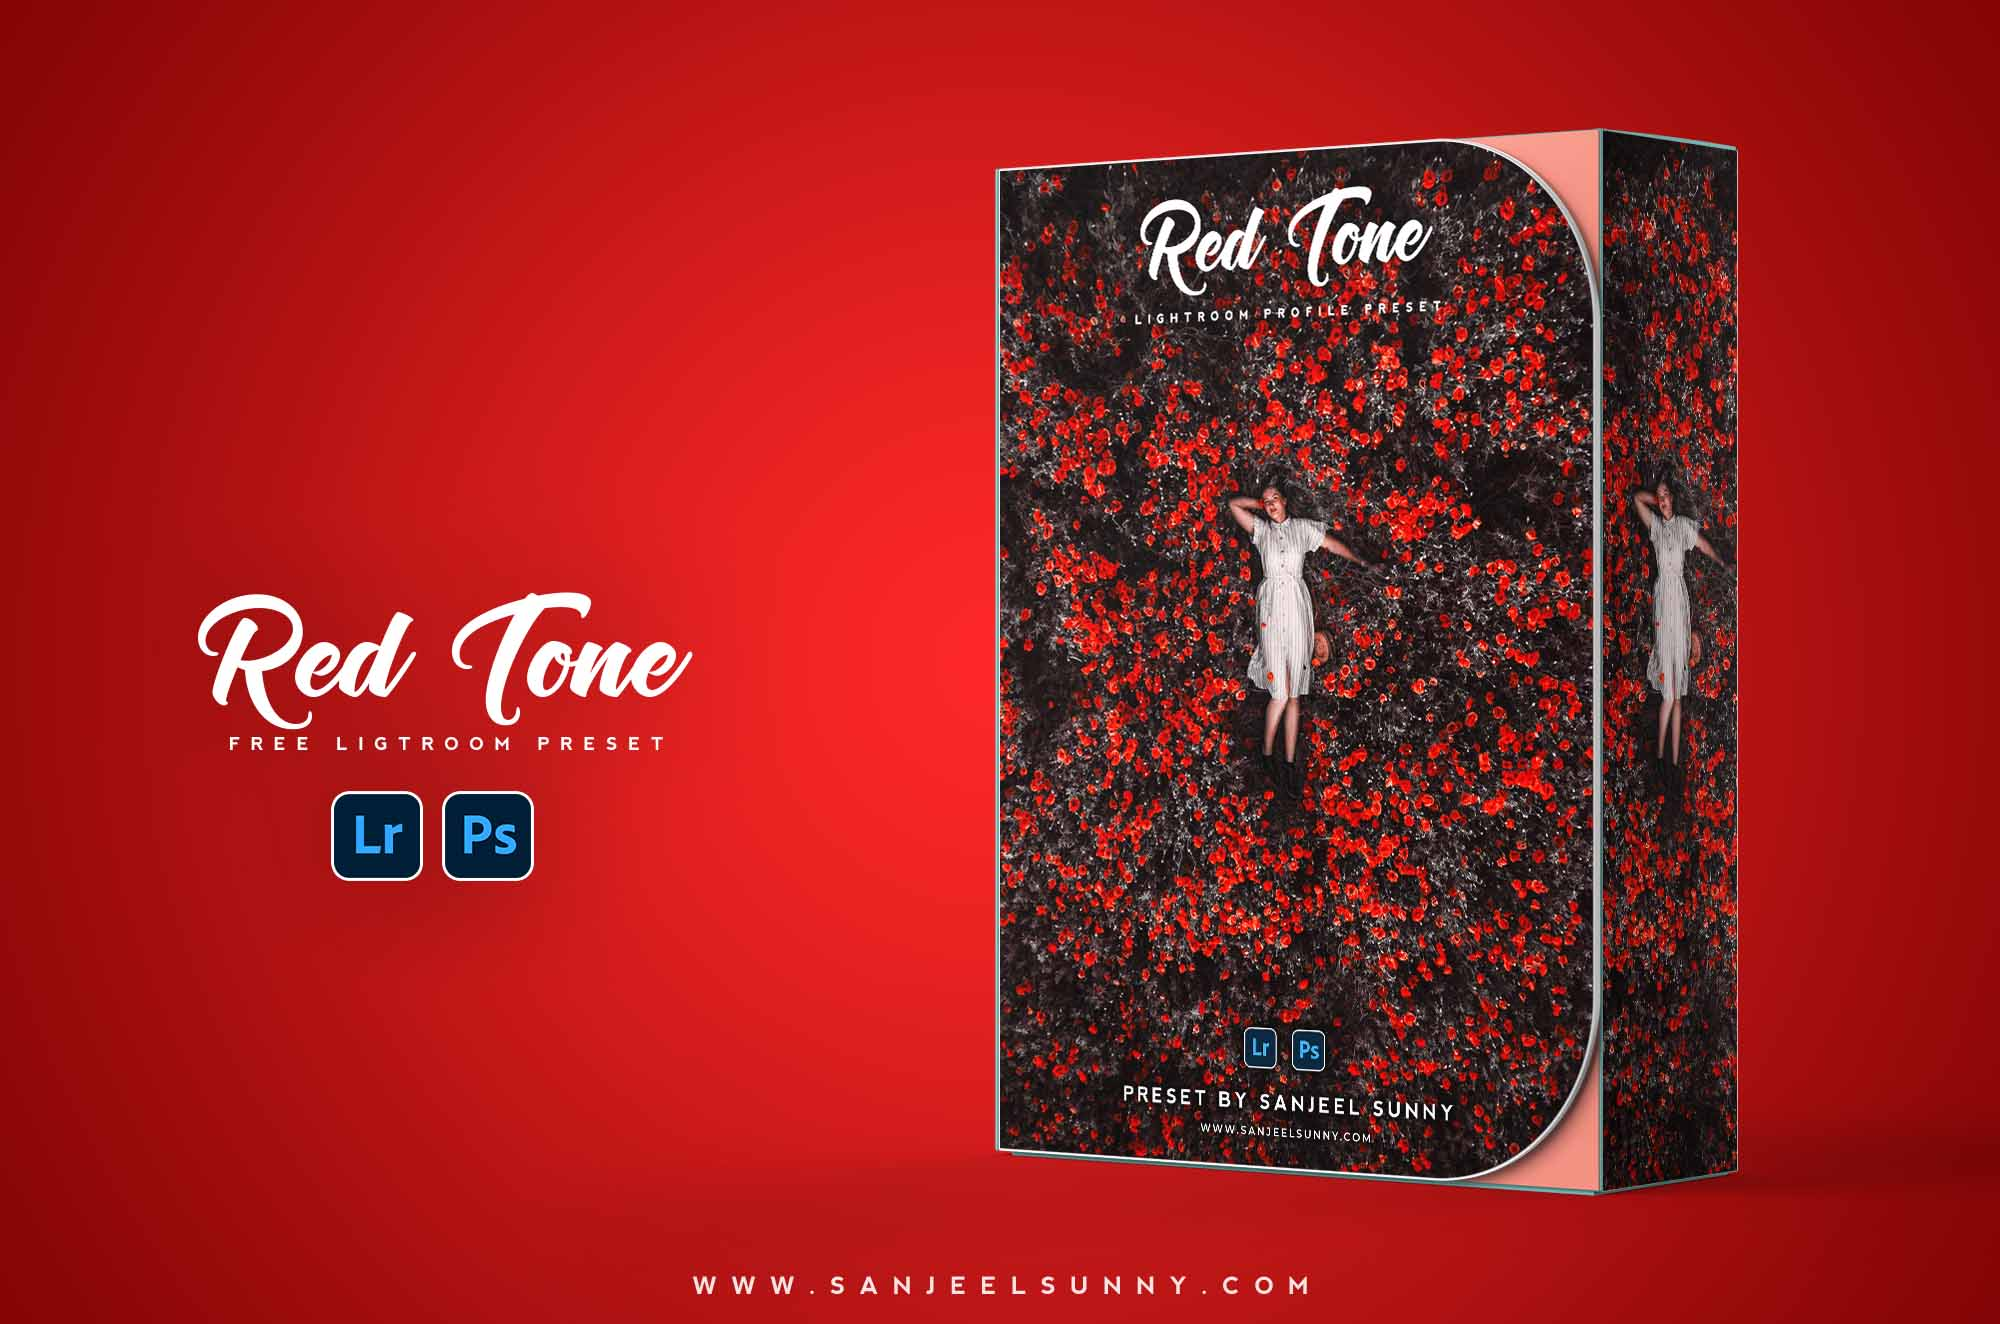 Red-tone-free-lightroom-preset-for-mobile-and-photosop-free-download-2021-zip-file